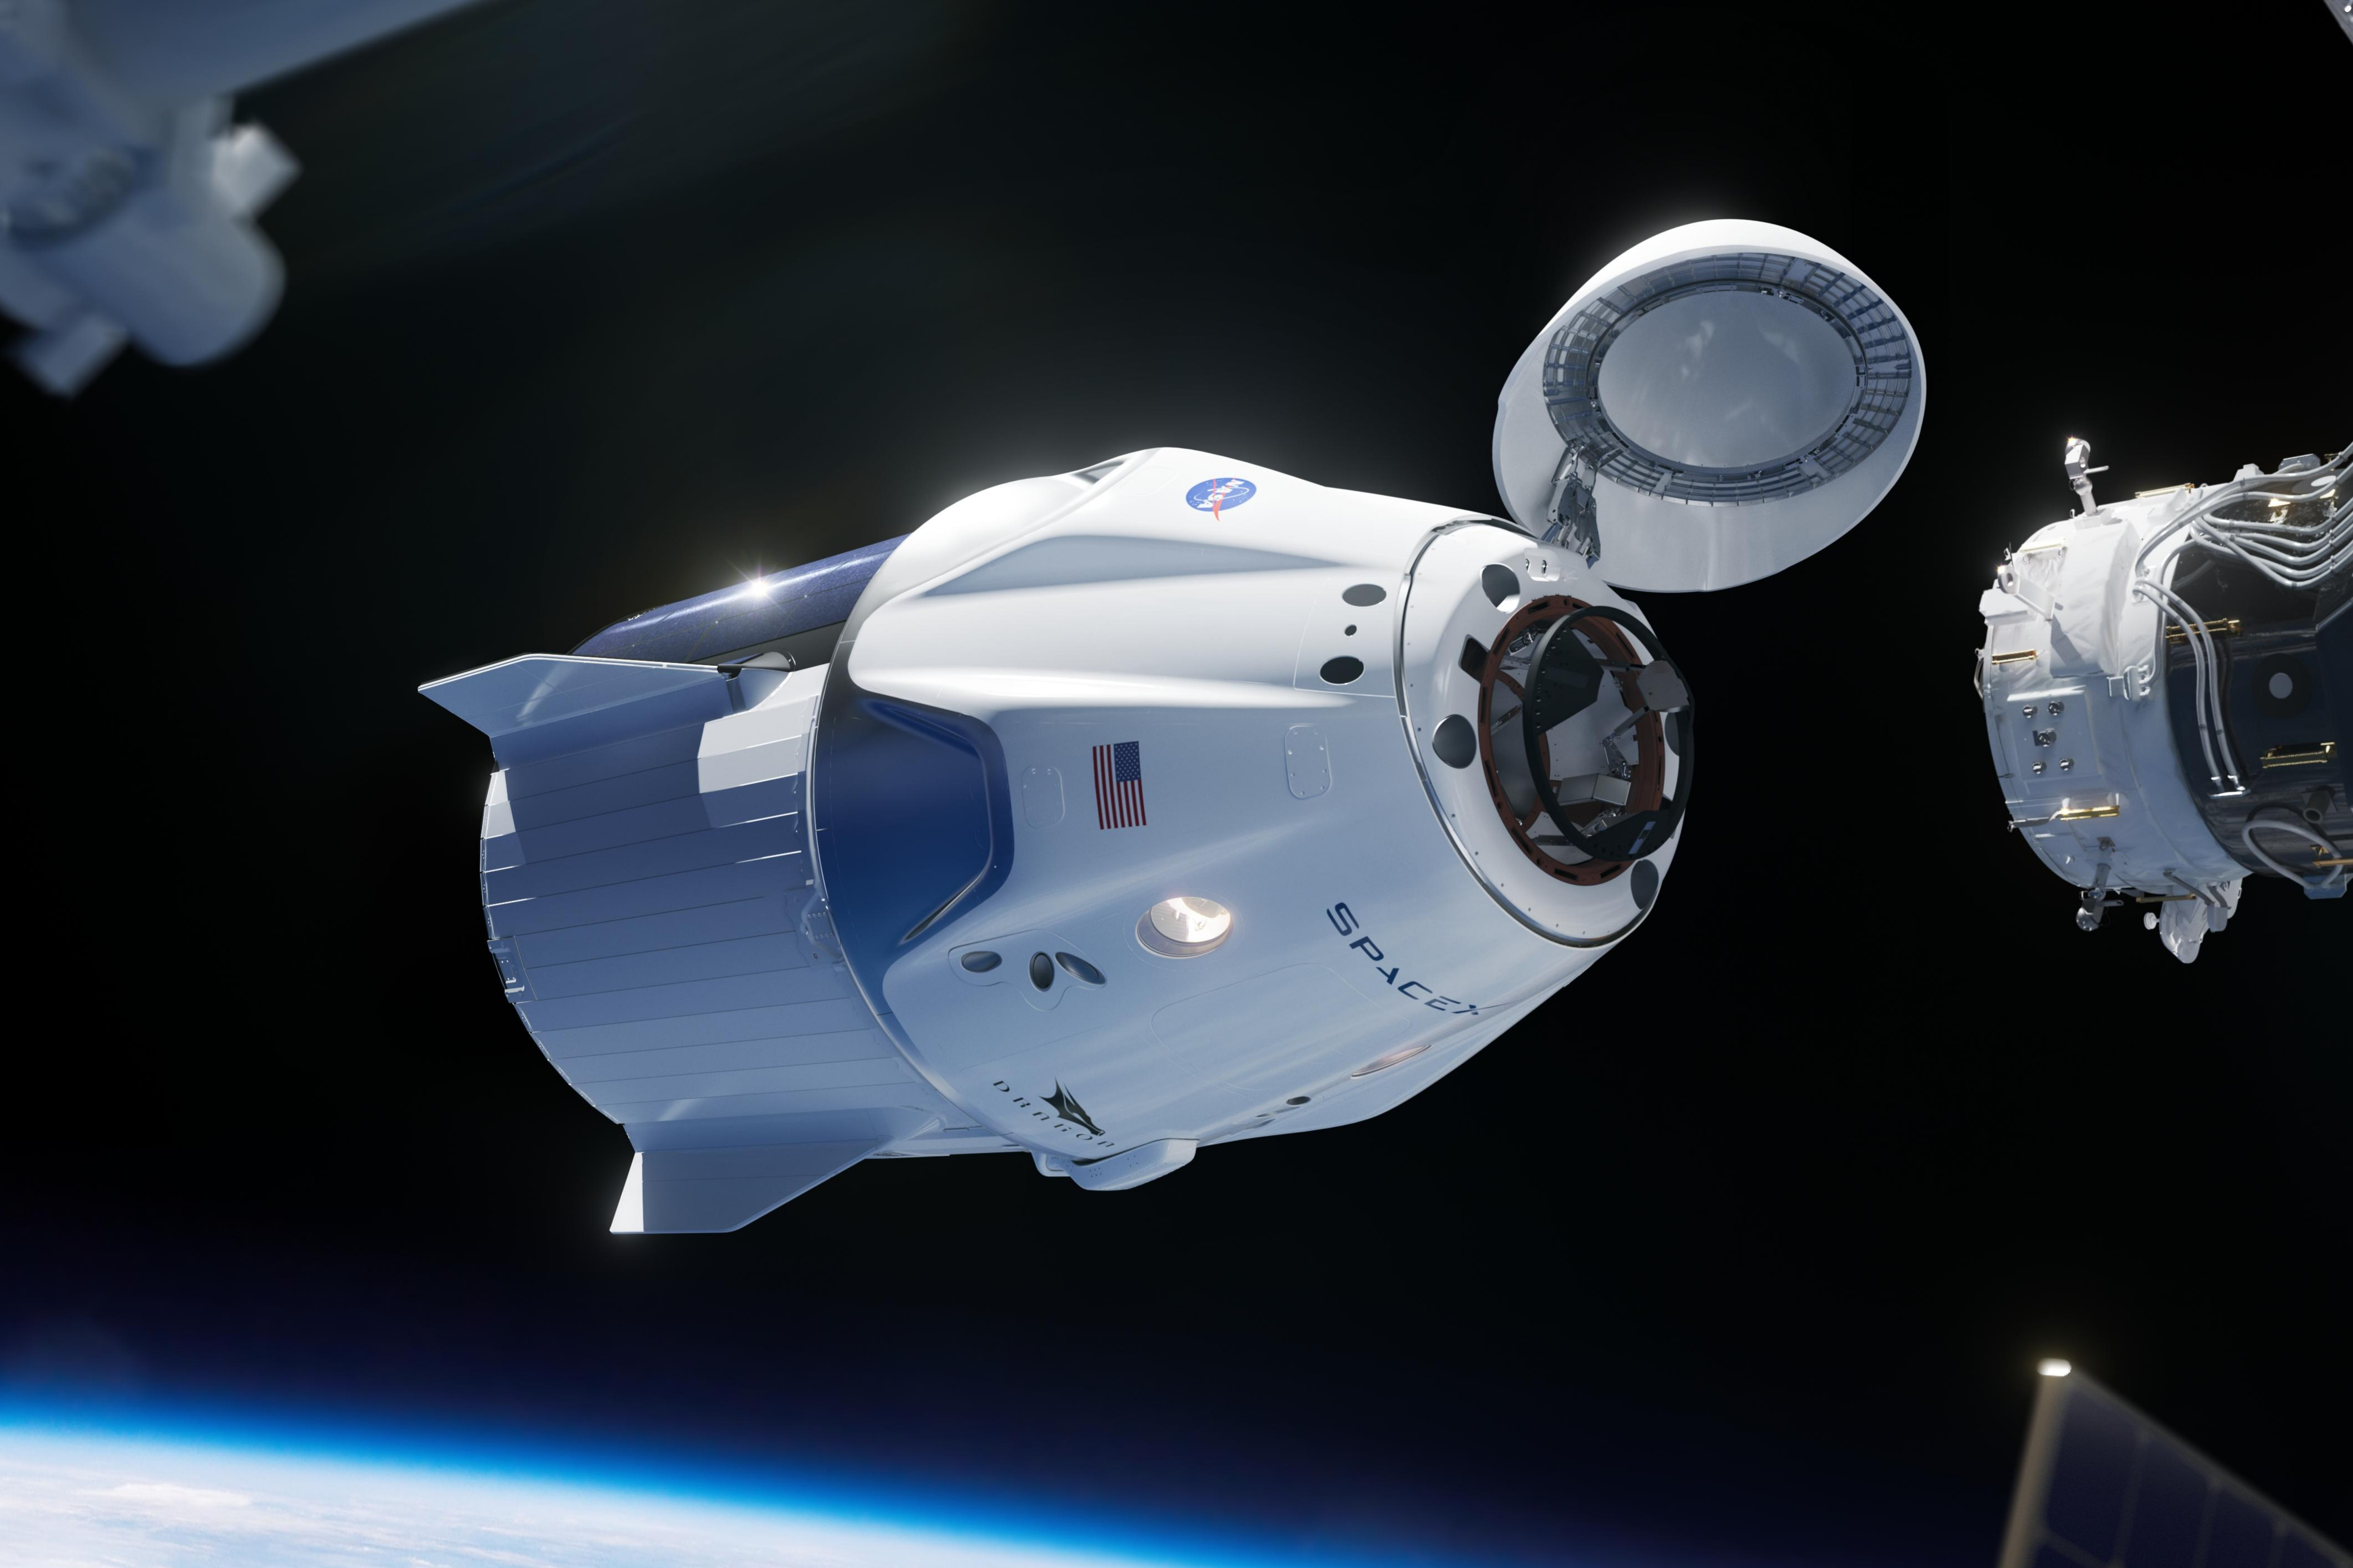 File:SpaceX Crew Dragon (More cropped).jpg - Wikimedia Commons